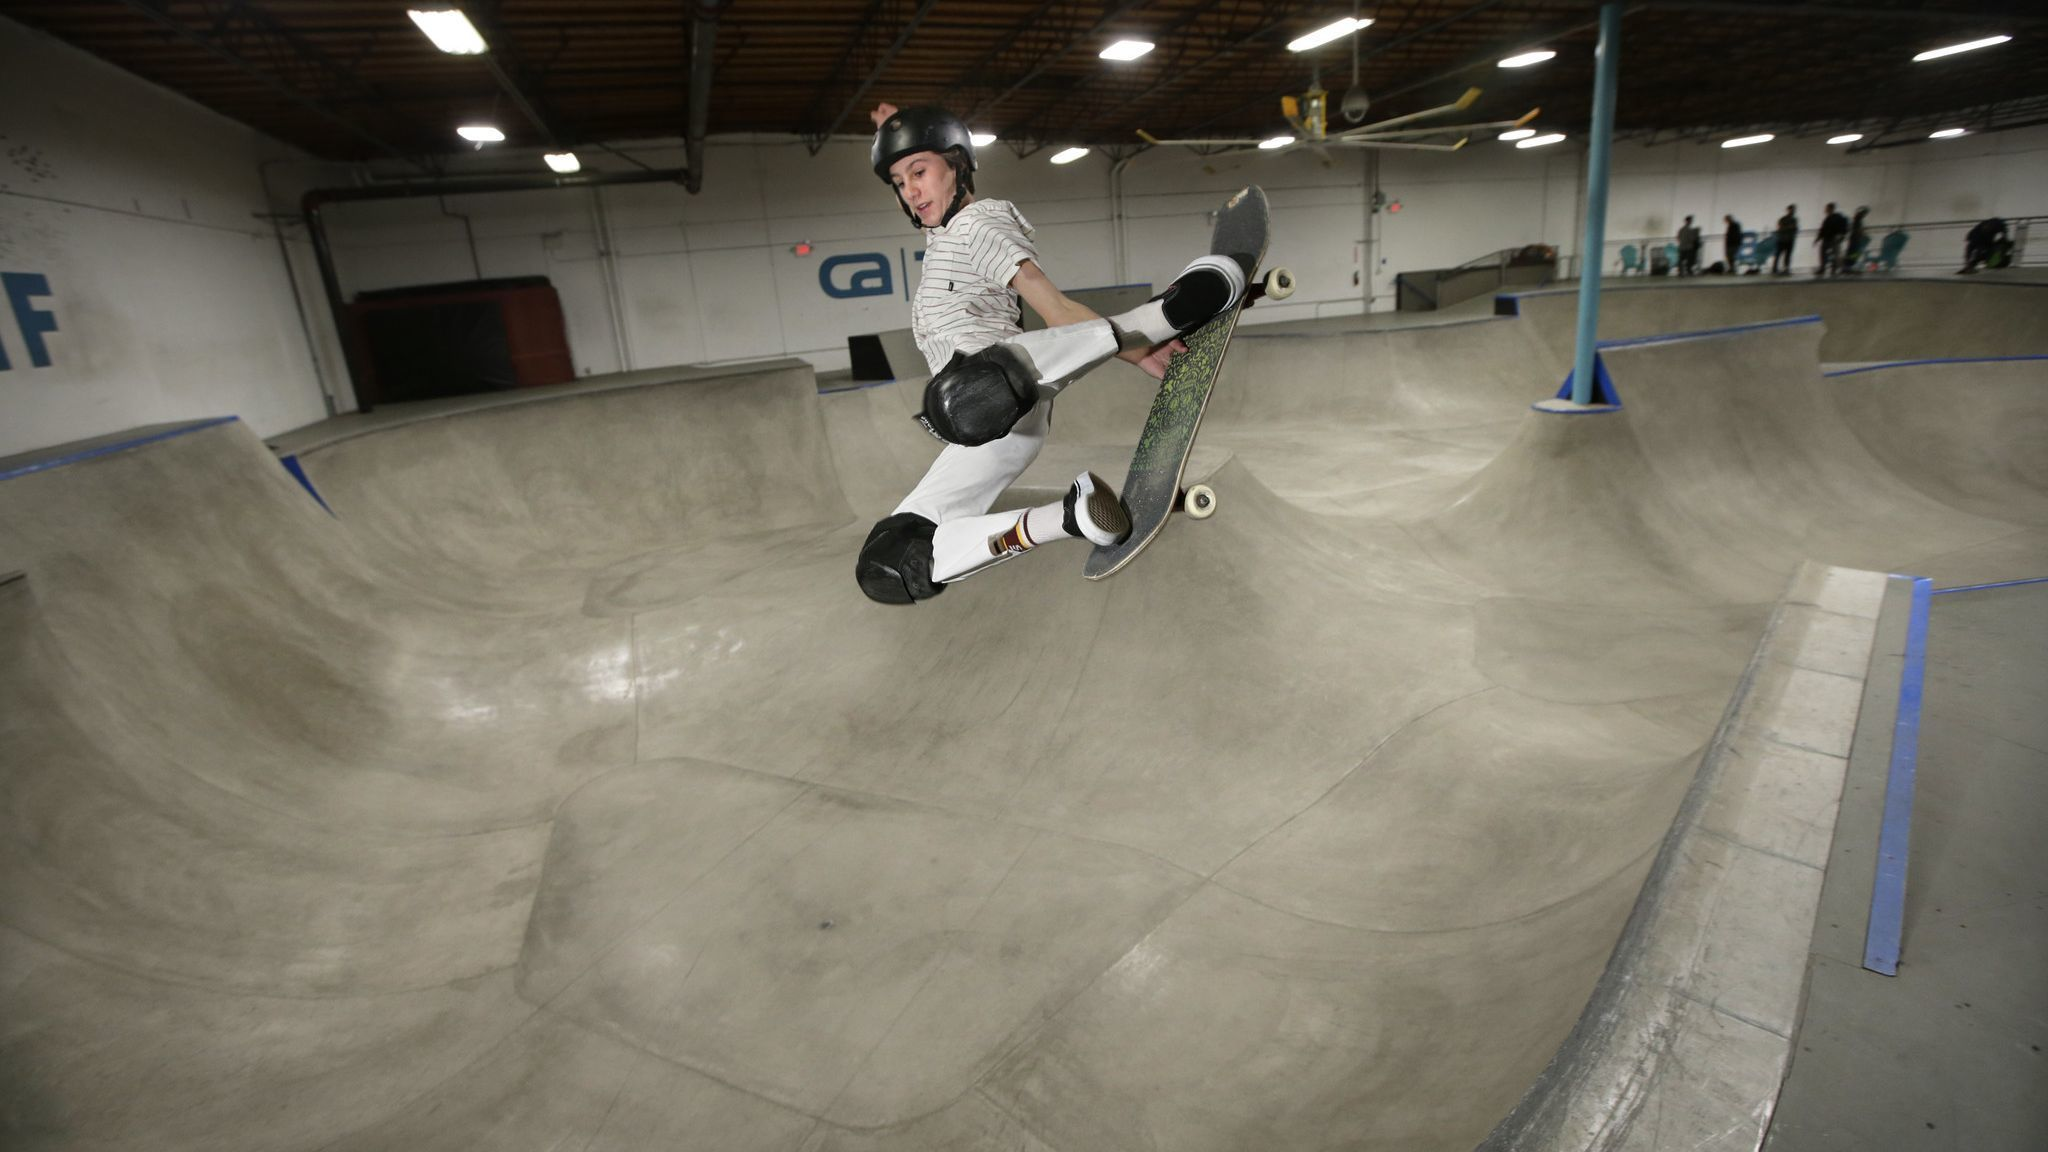 Path to Olympic gold runs through Vista for skateboarding's best